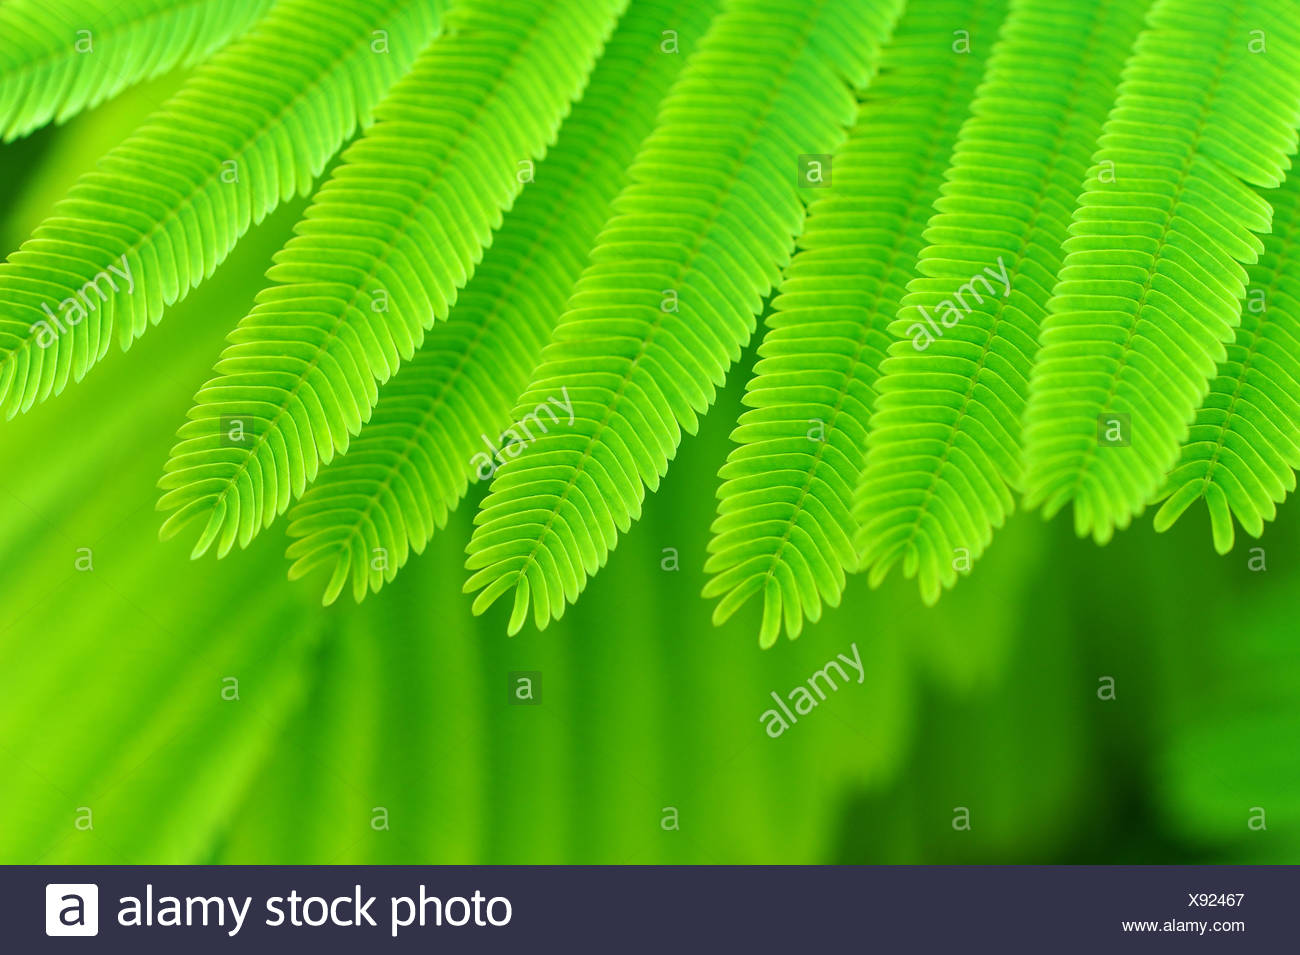 Acacia Leaves Stock Photos Acacia Leaves Stock Images Alamy